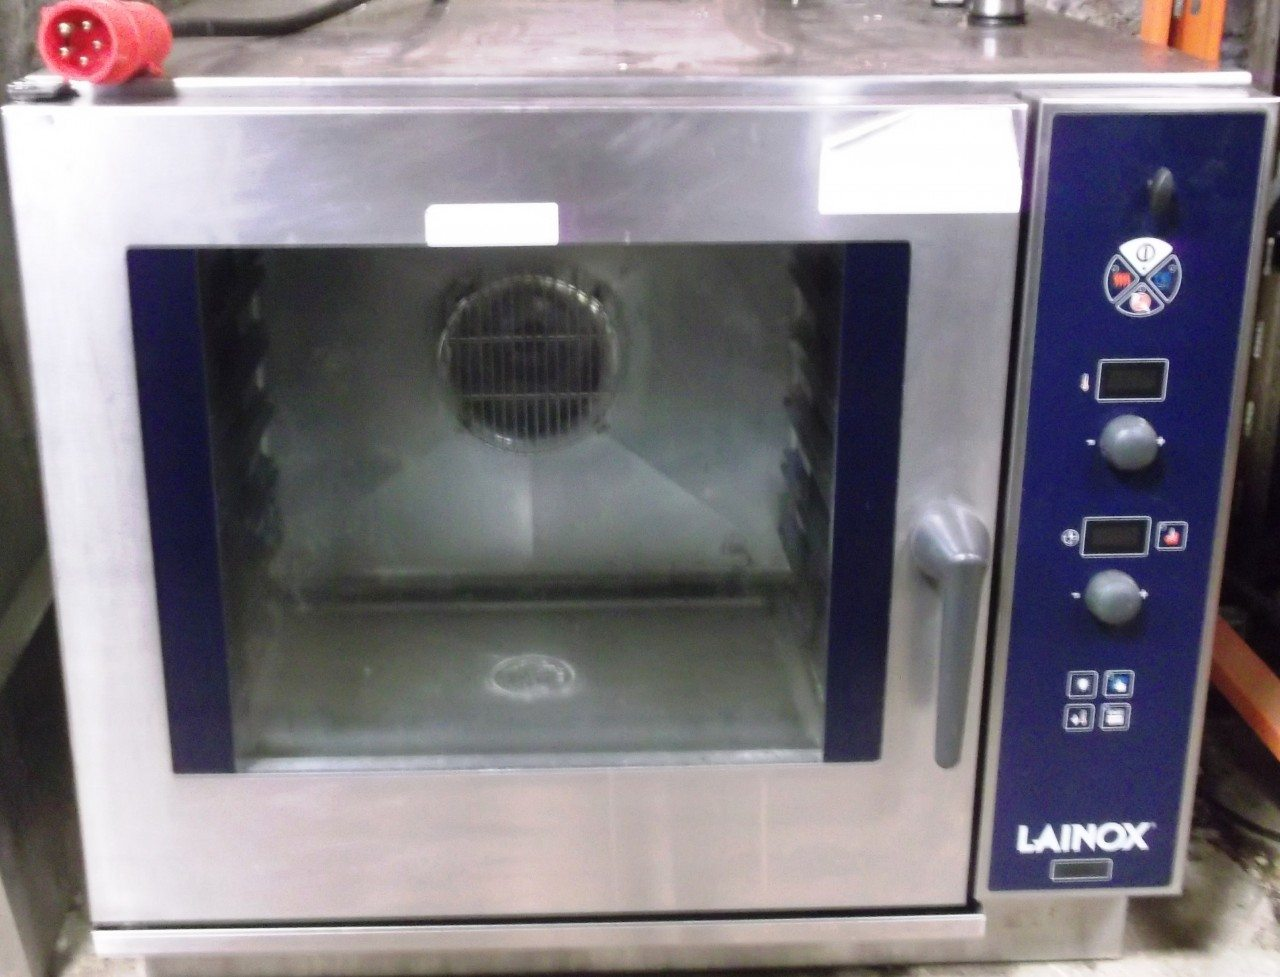 LAINOX Electric 6 Grid Combi Oven with Floor Stand. CLEARANCE ITEM